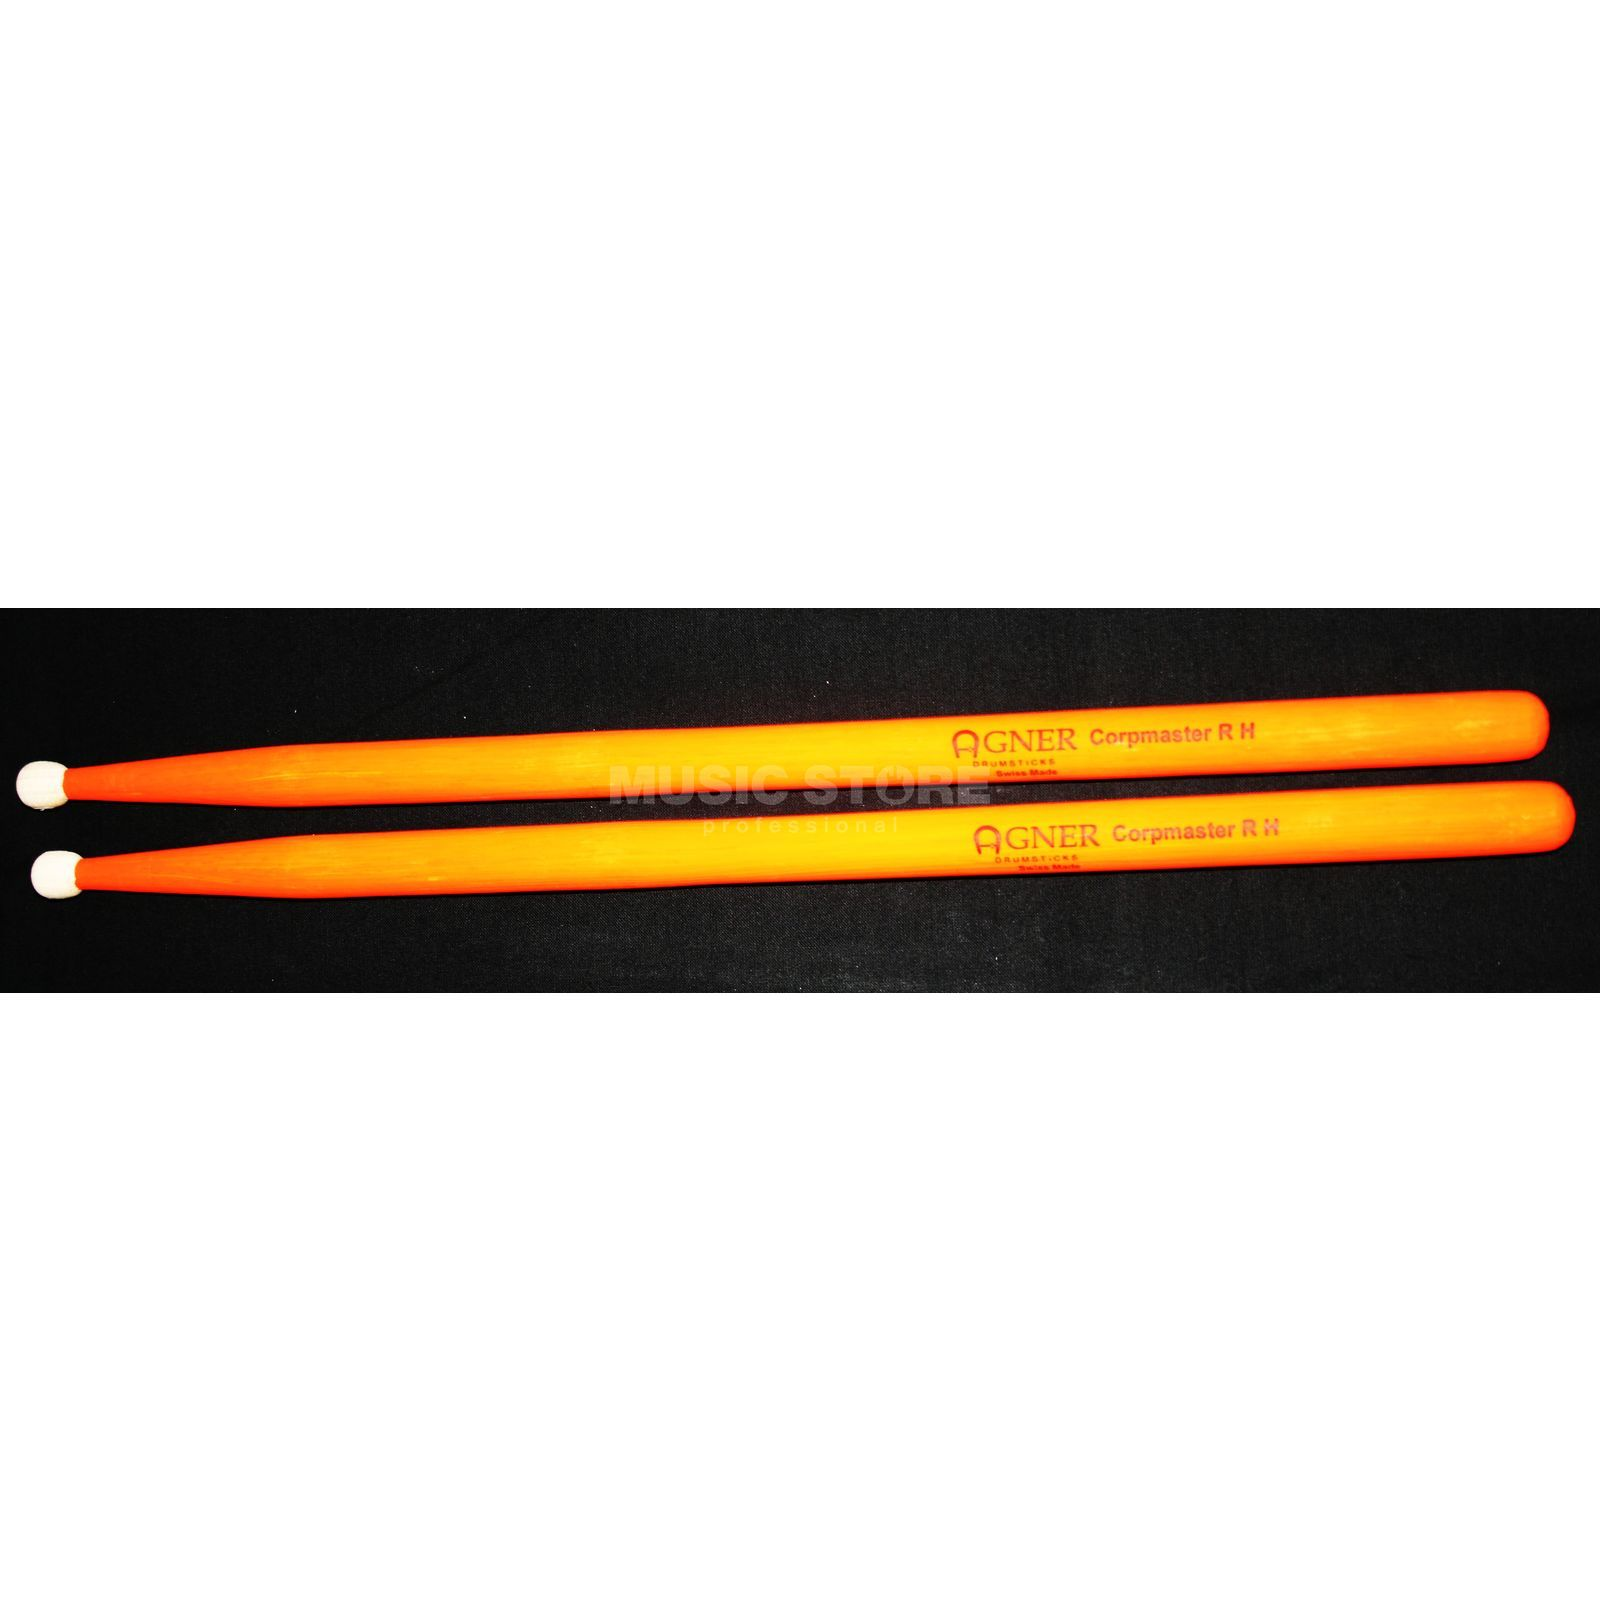 Agner UV-Marching Sticks, 4A, Corpmaster R H, Orange Produktbillede